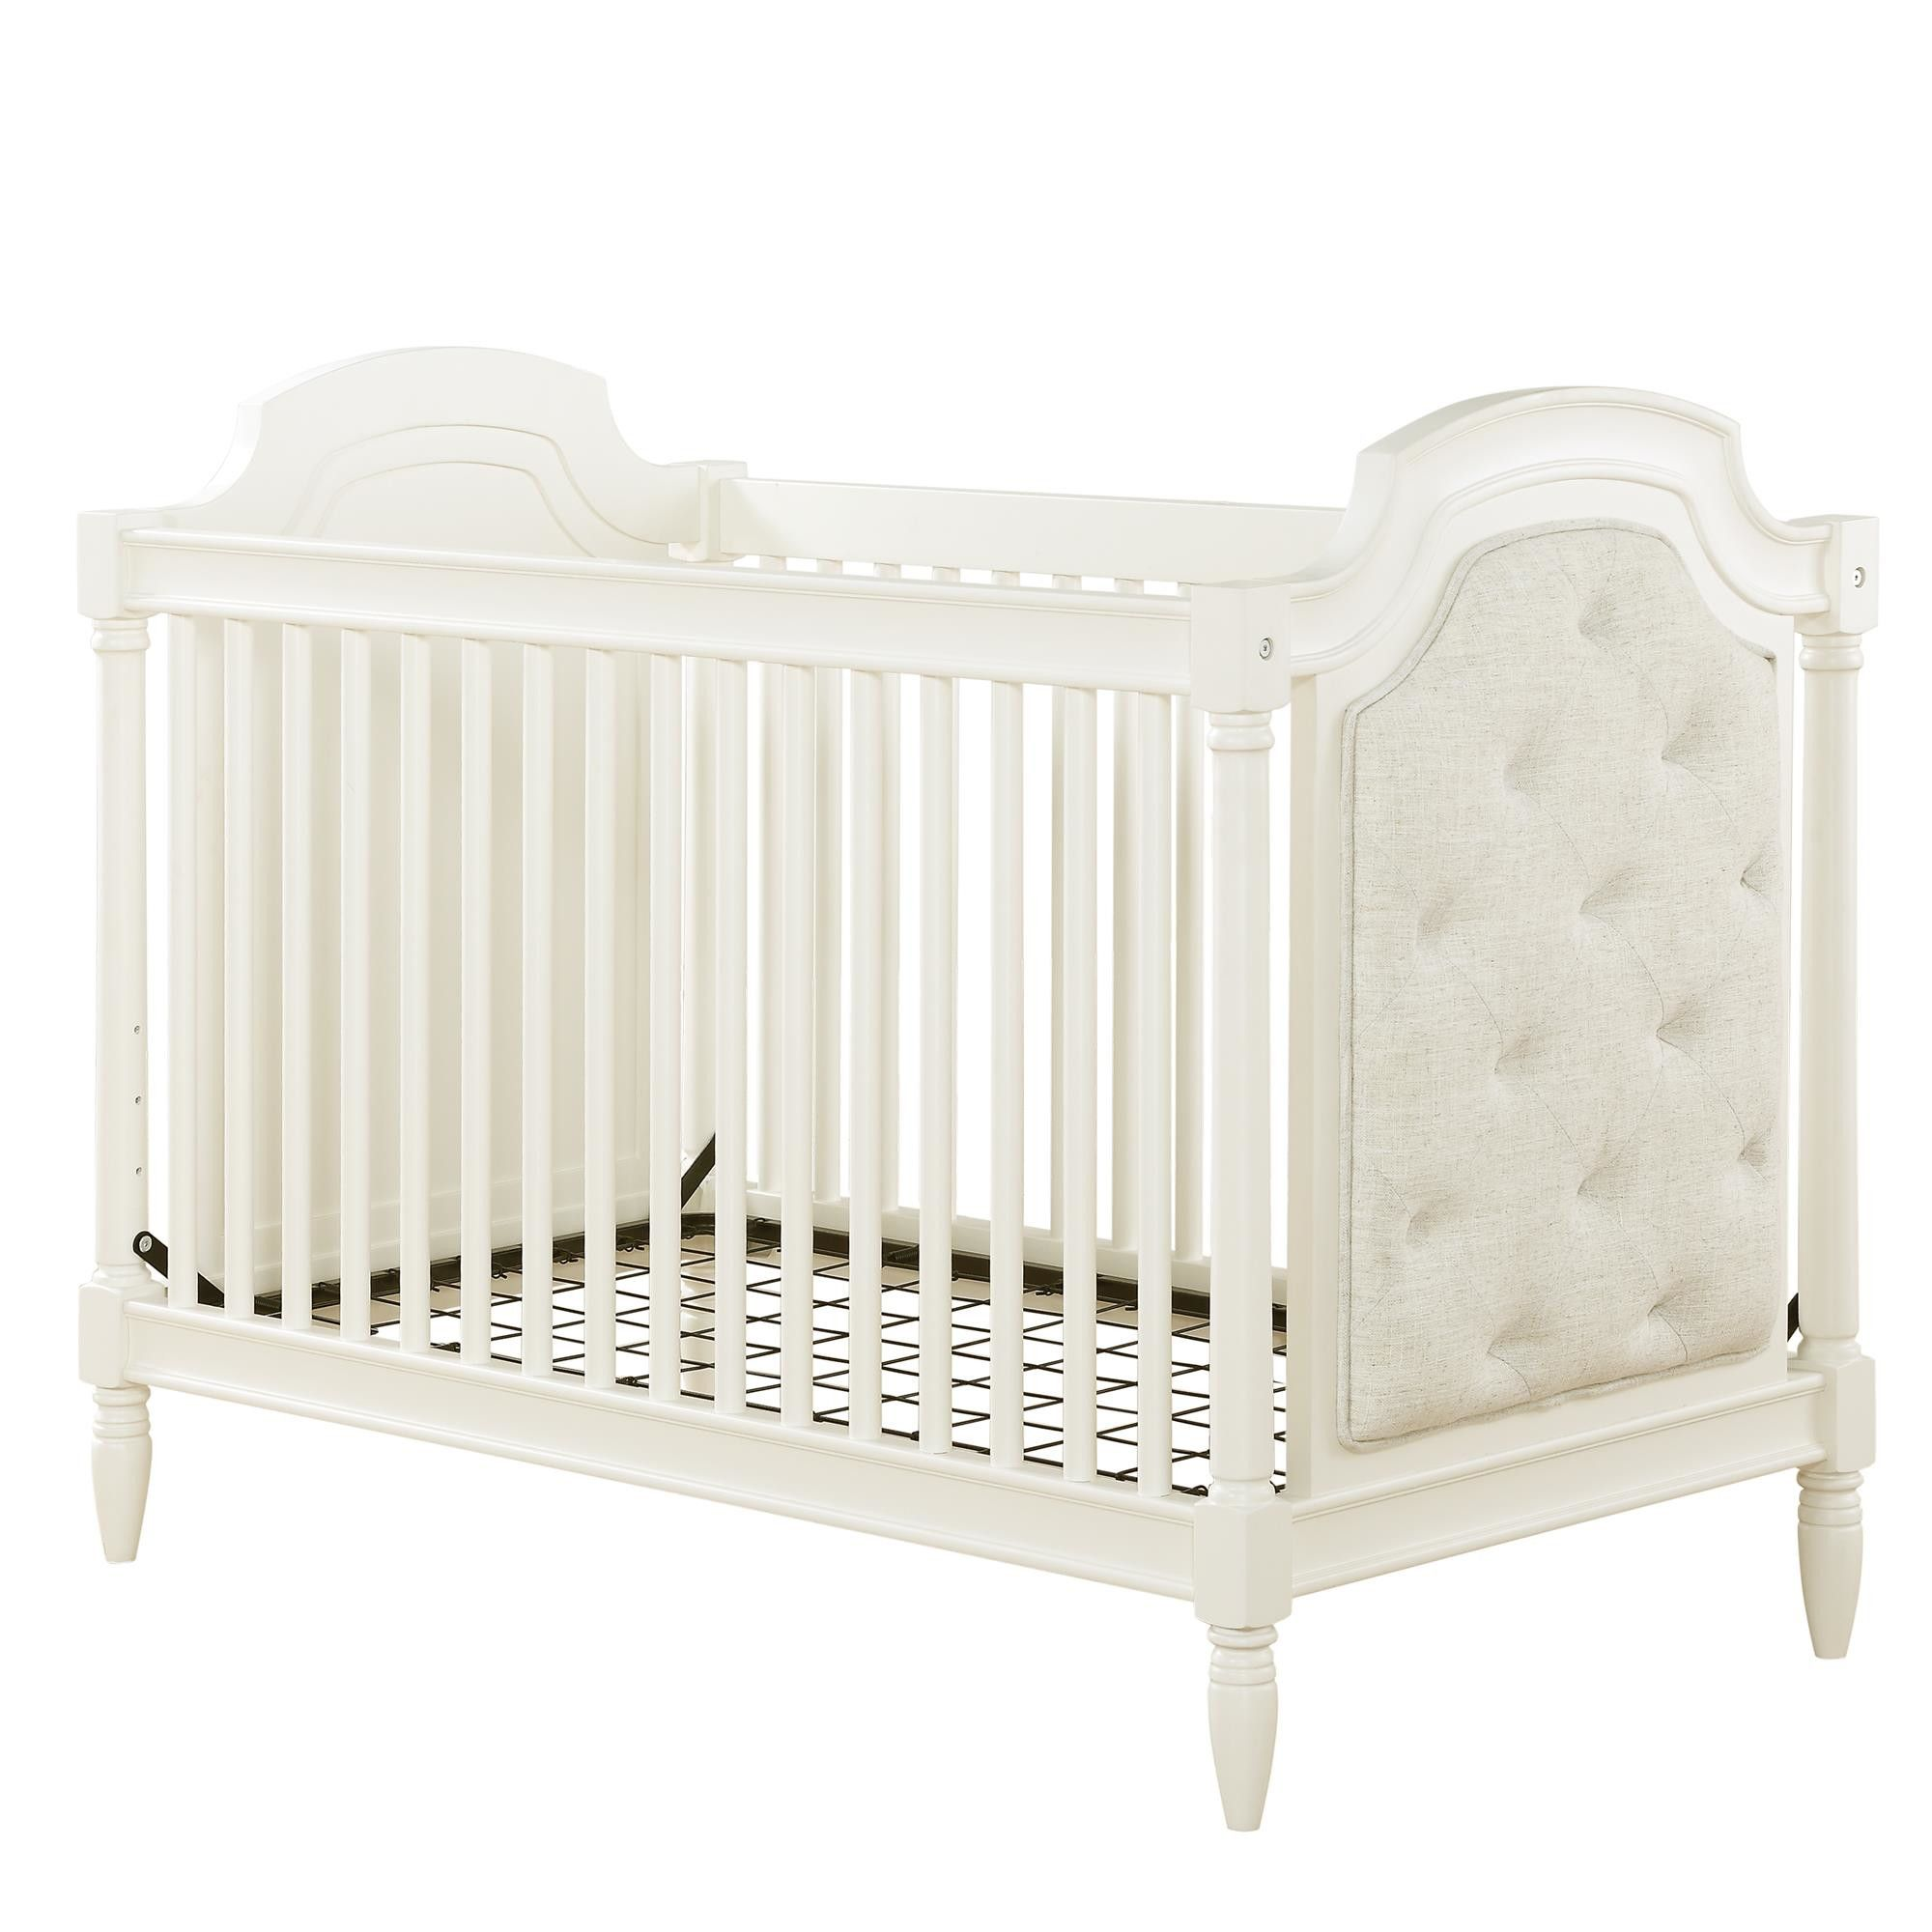 Jameson panel crib for sale - Josie Upholstered 2 In 1 Convertible Crib